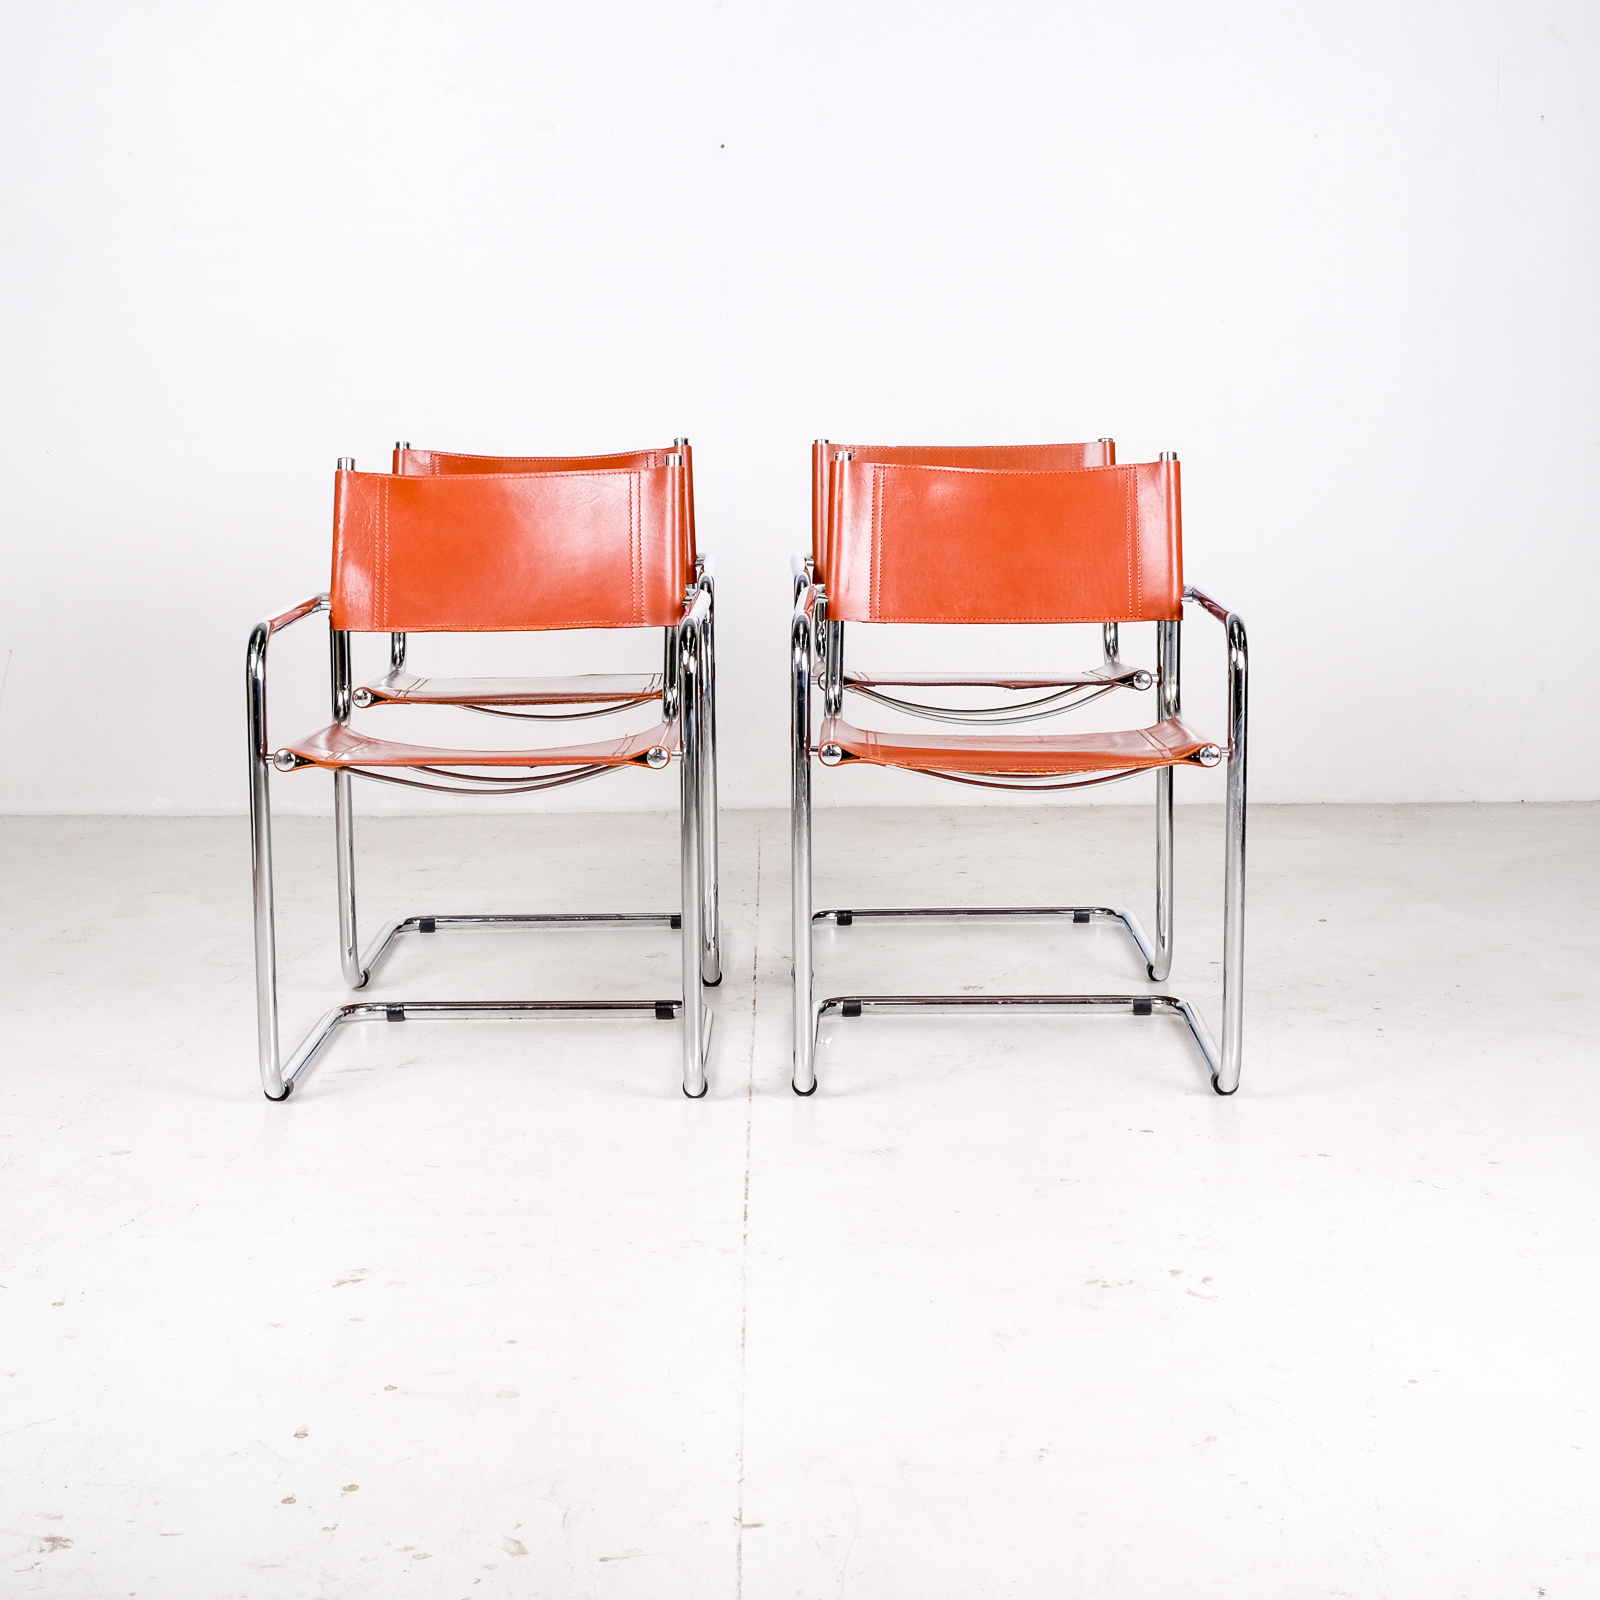 Set Of 4 Model S34 Cantilever Chairs In Cognac Leather By Mart Stam For Thonet, 1980s, Germany002